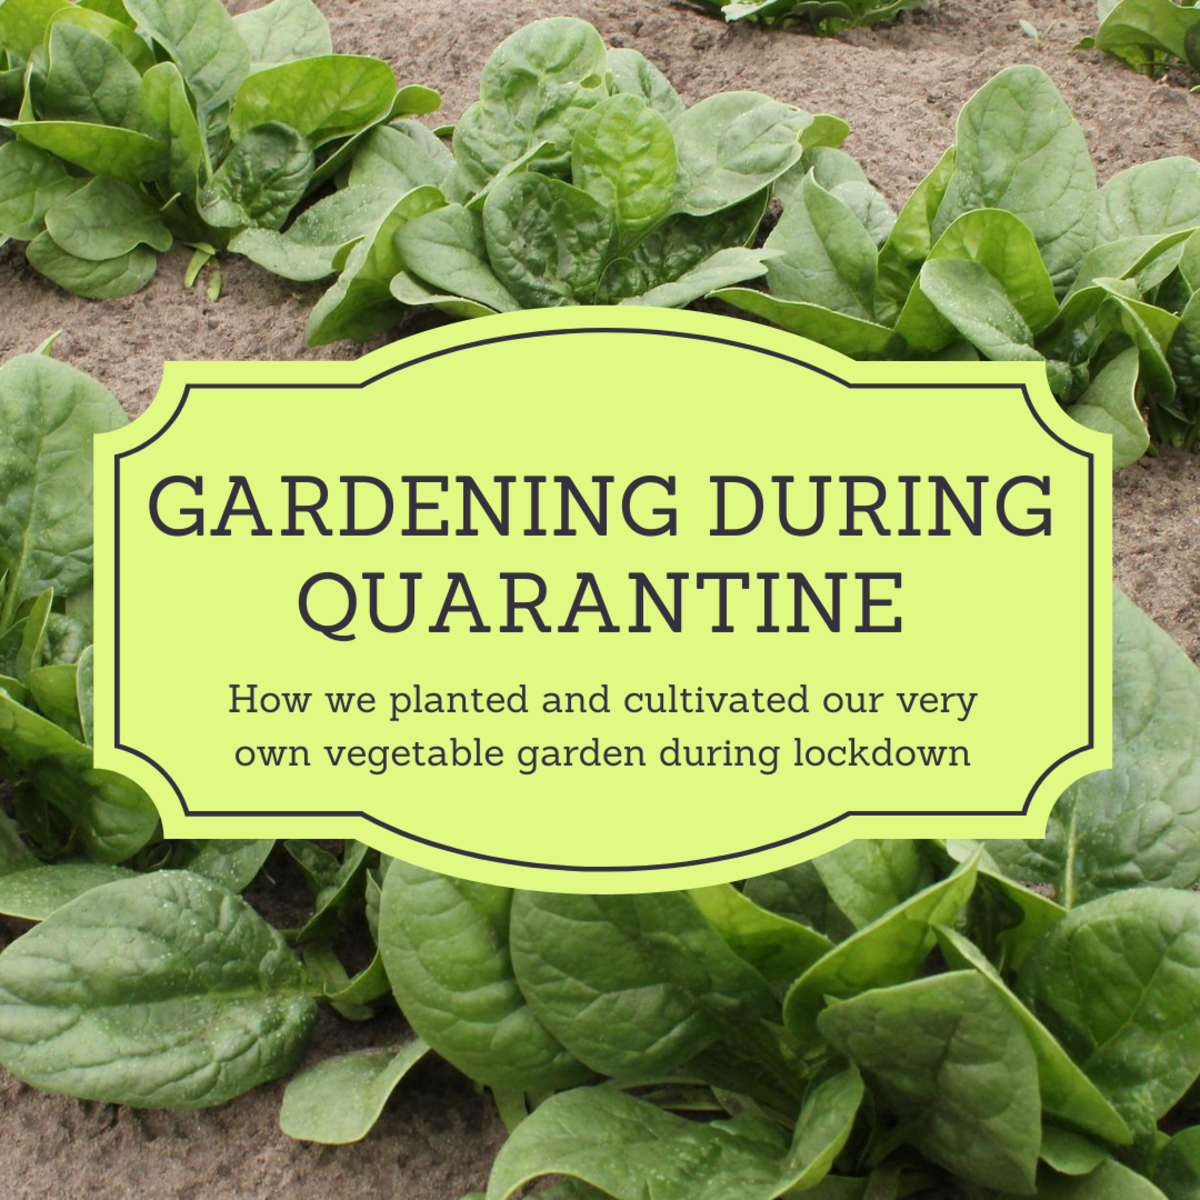 This article will share our family's process of starting a vegetable garden during the COVID-19 global pandemic.